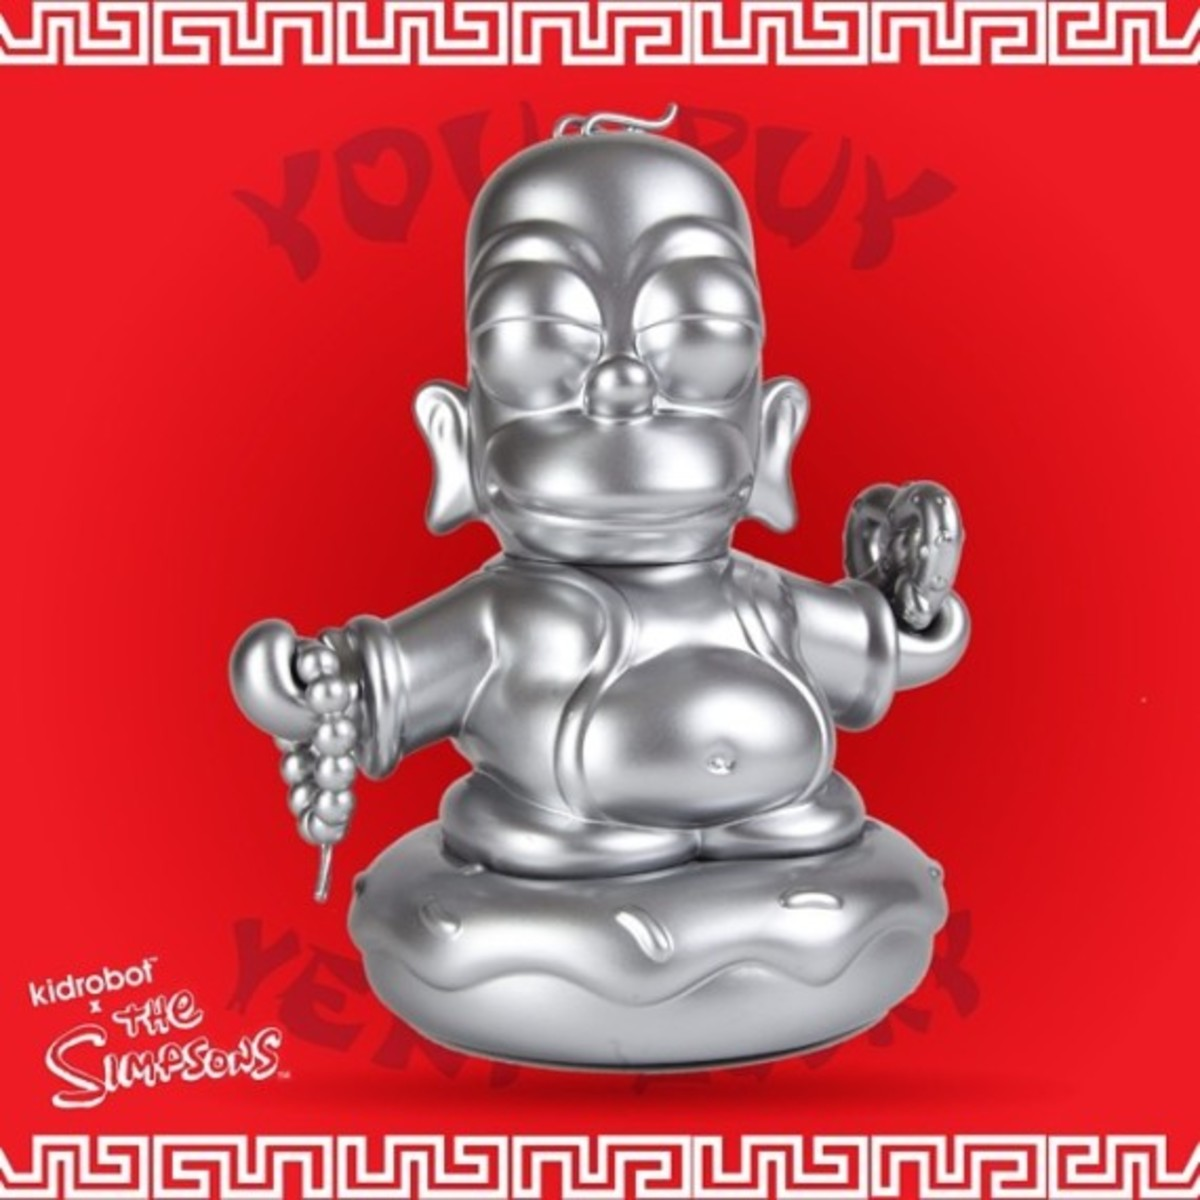 Kidrobot x The Simpsons Homer Buddha - Metallic Silver | Available Now - 1